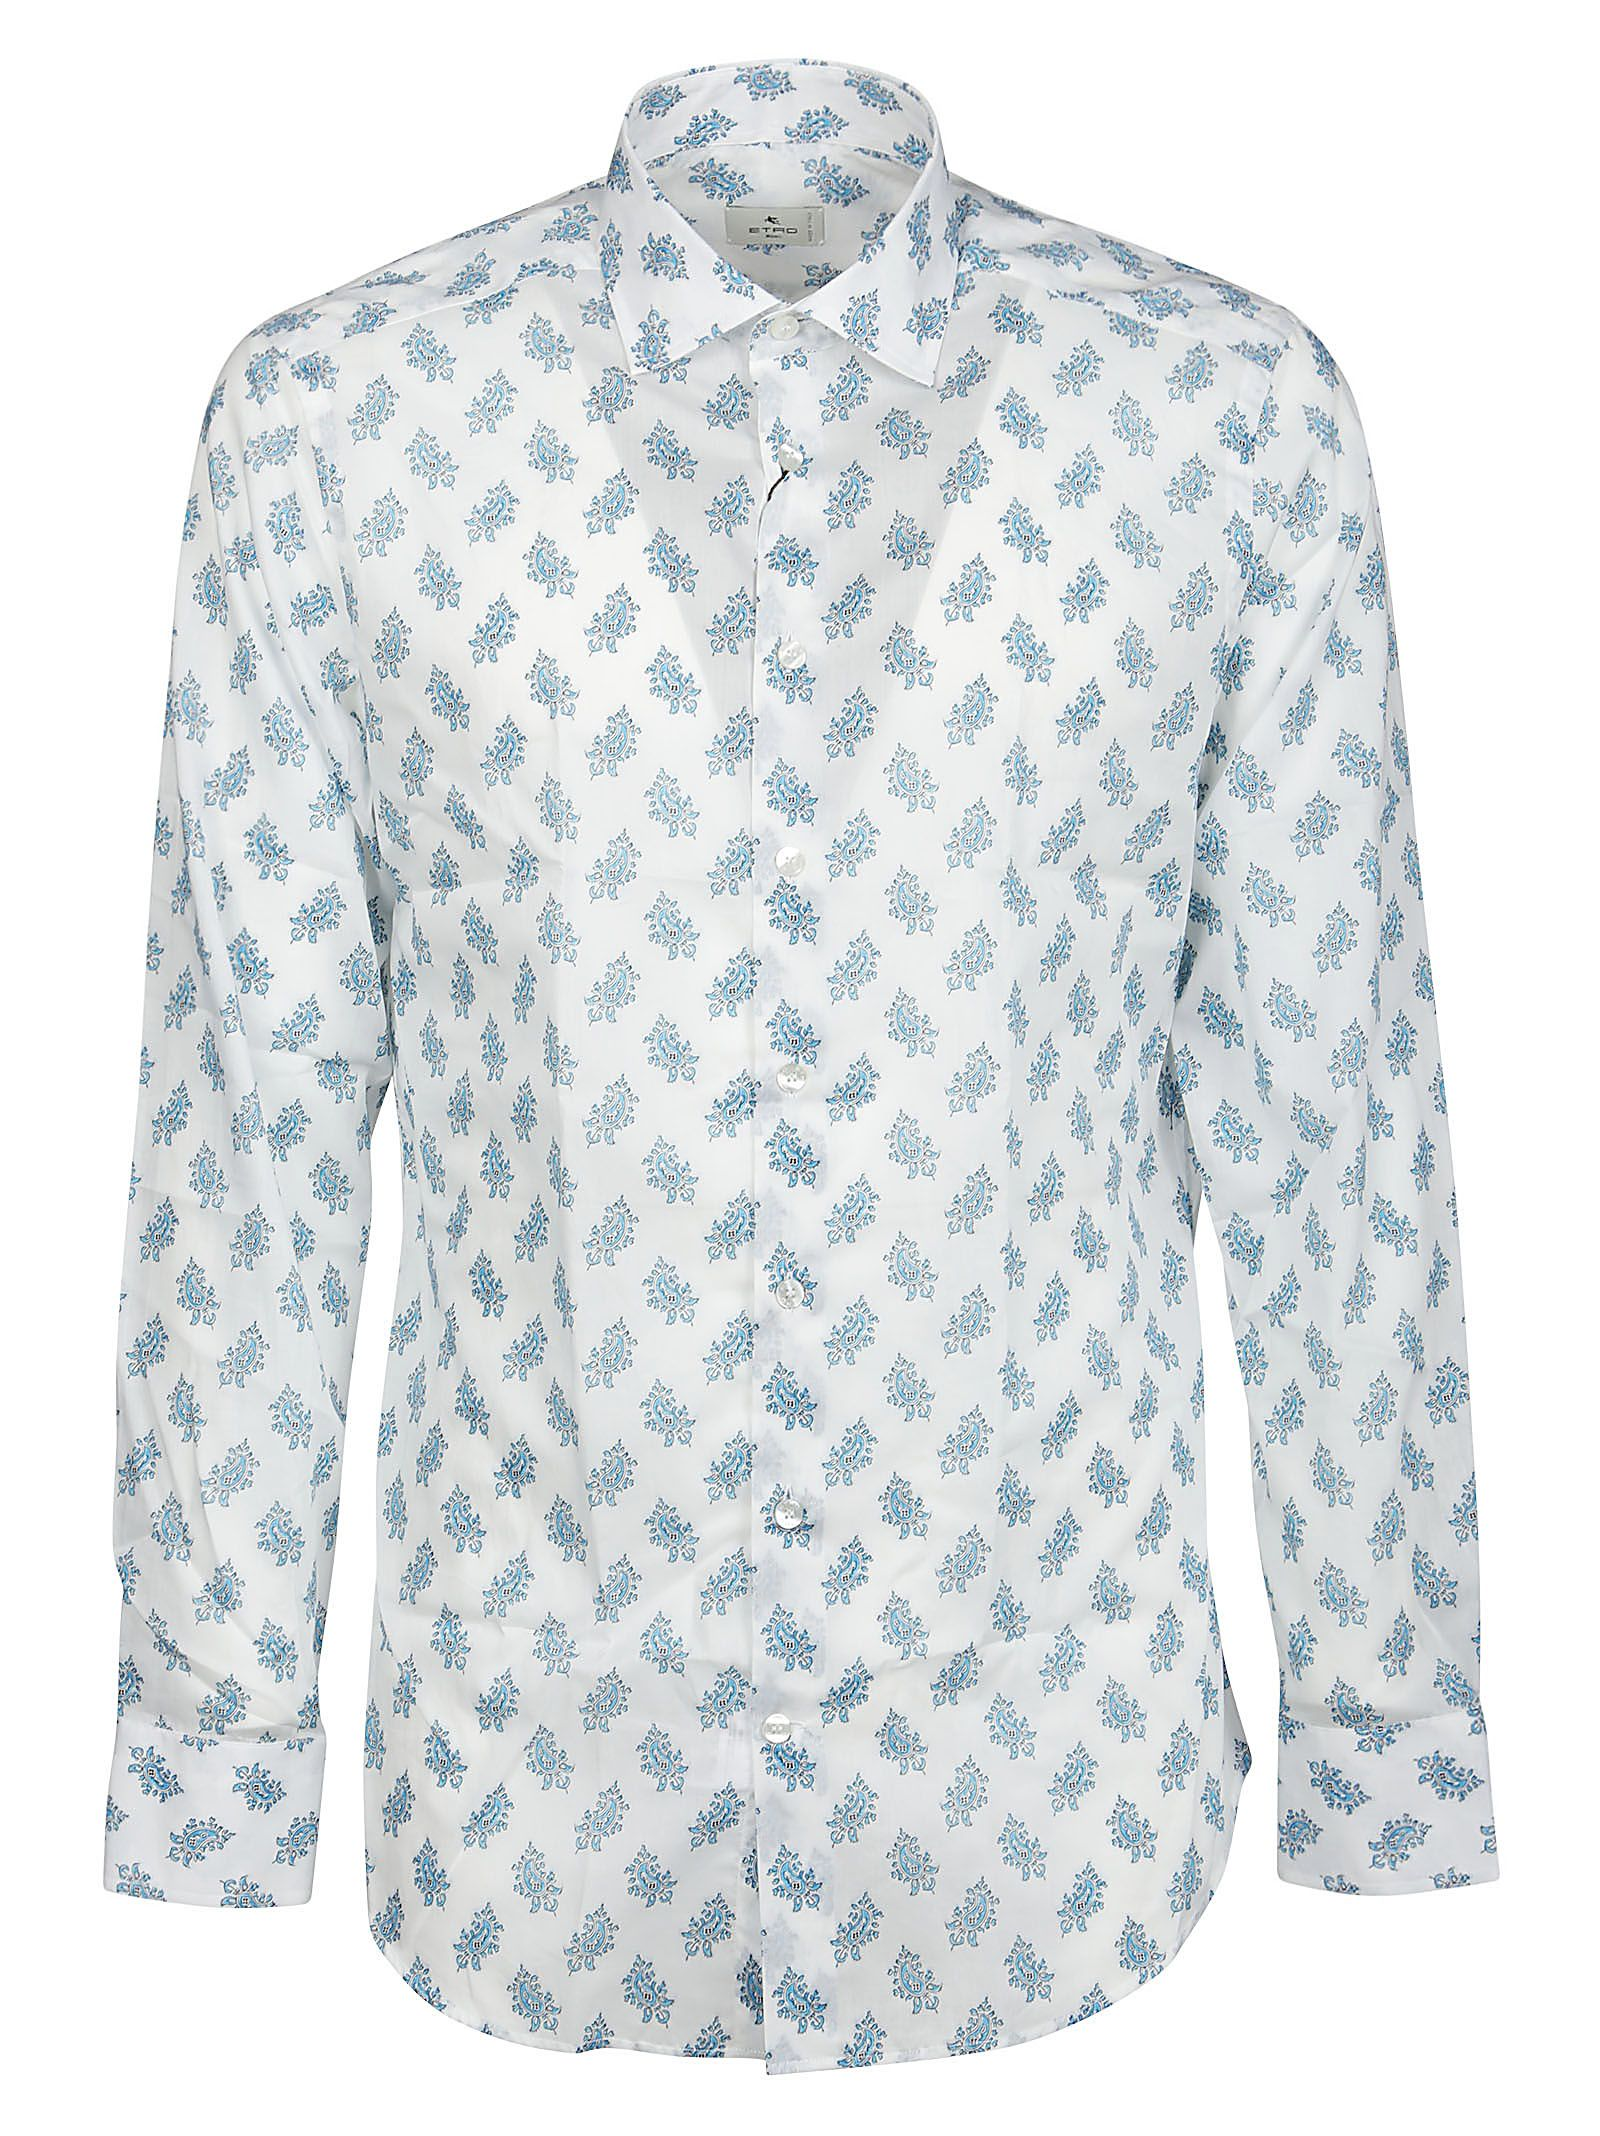 Etro Cottons ETRO MEN'S 1145147630990 WHITE OTHER MATERIALS SHIRT